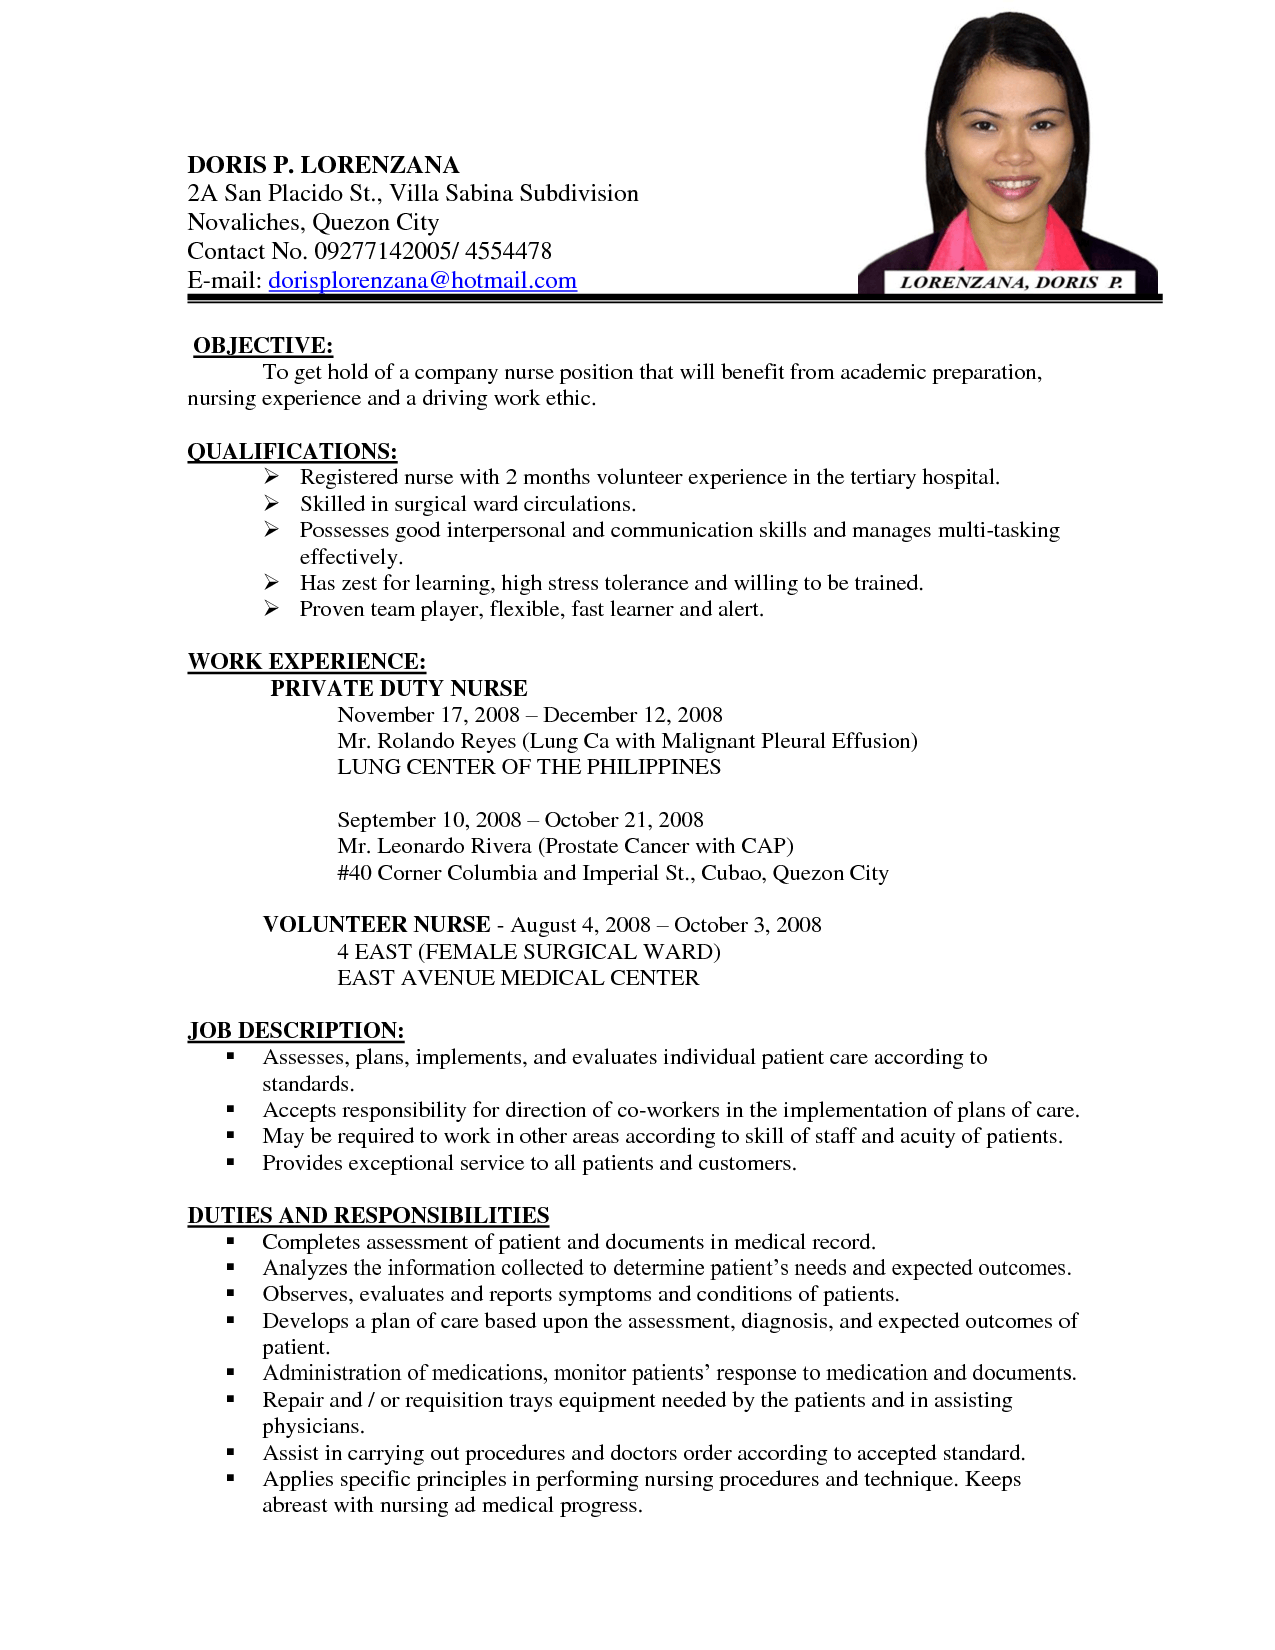 image result for curriculum vitae format for a nurse